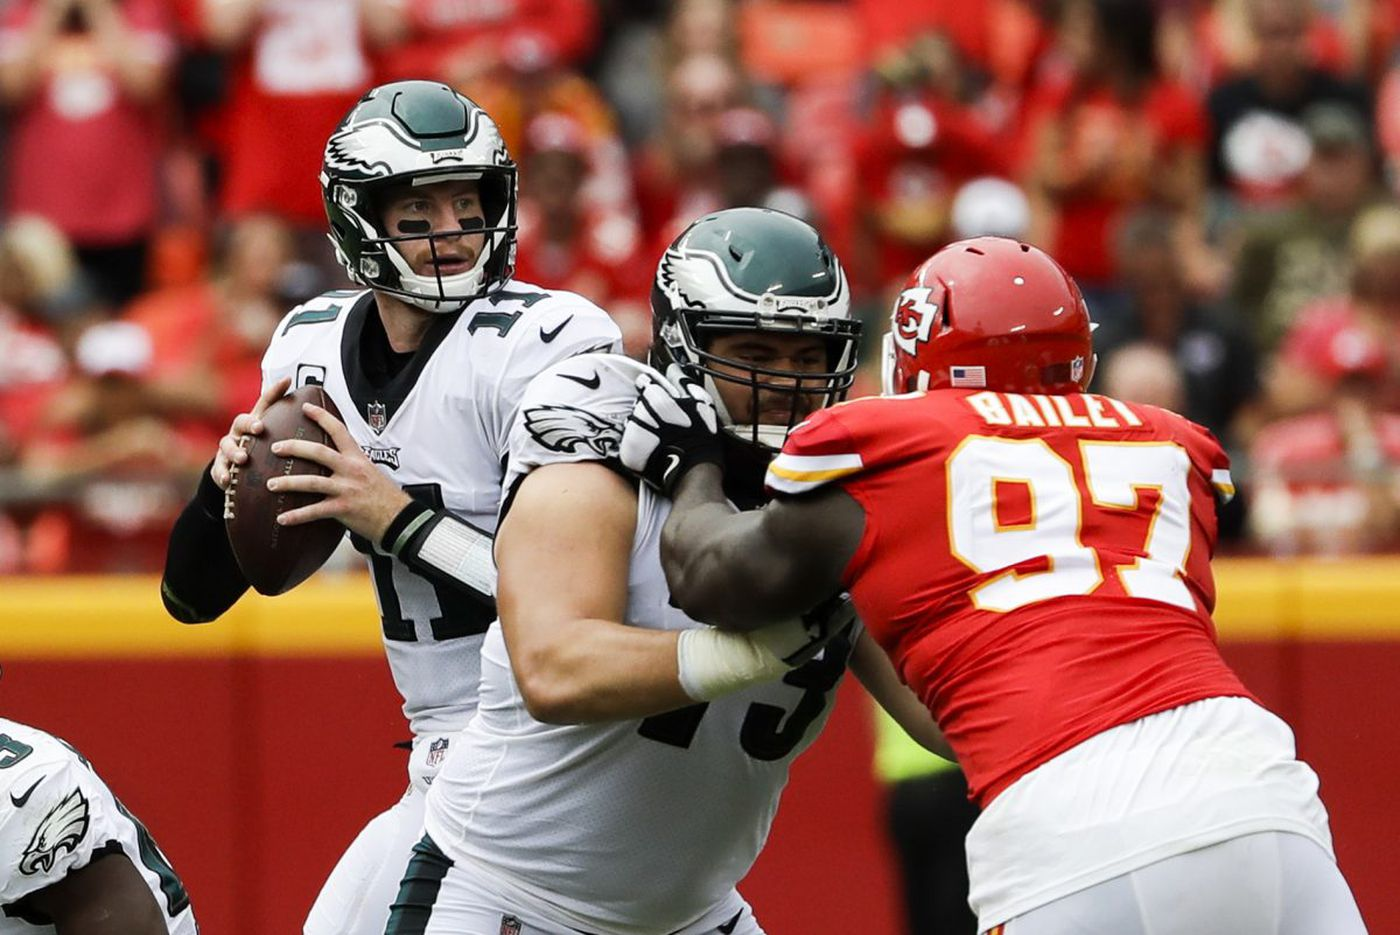 Eagles need to get into better third-down situations